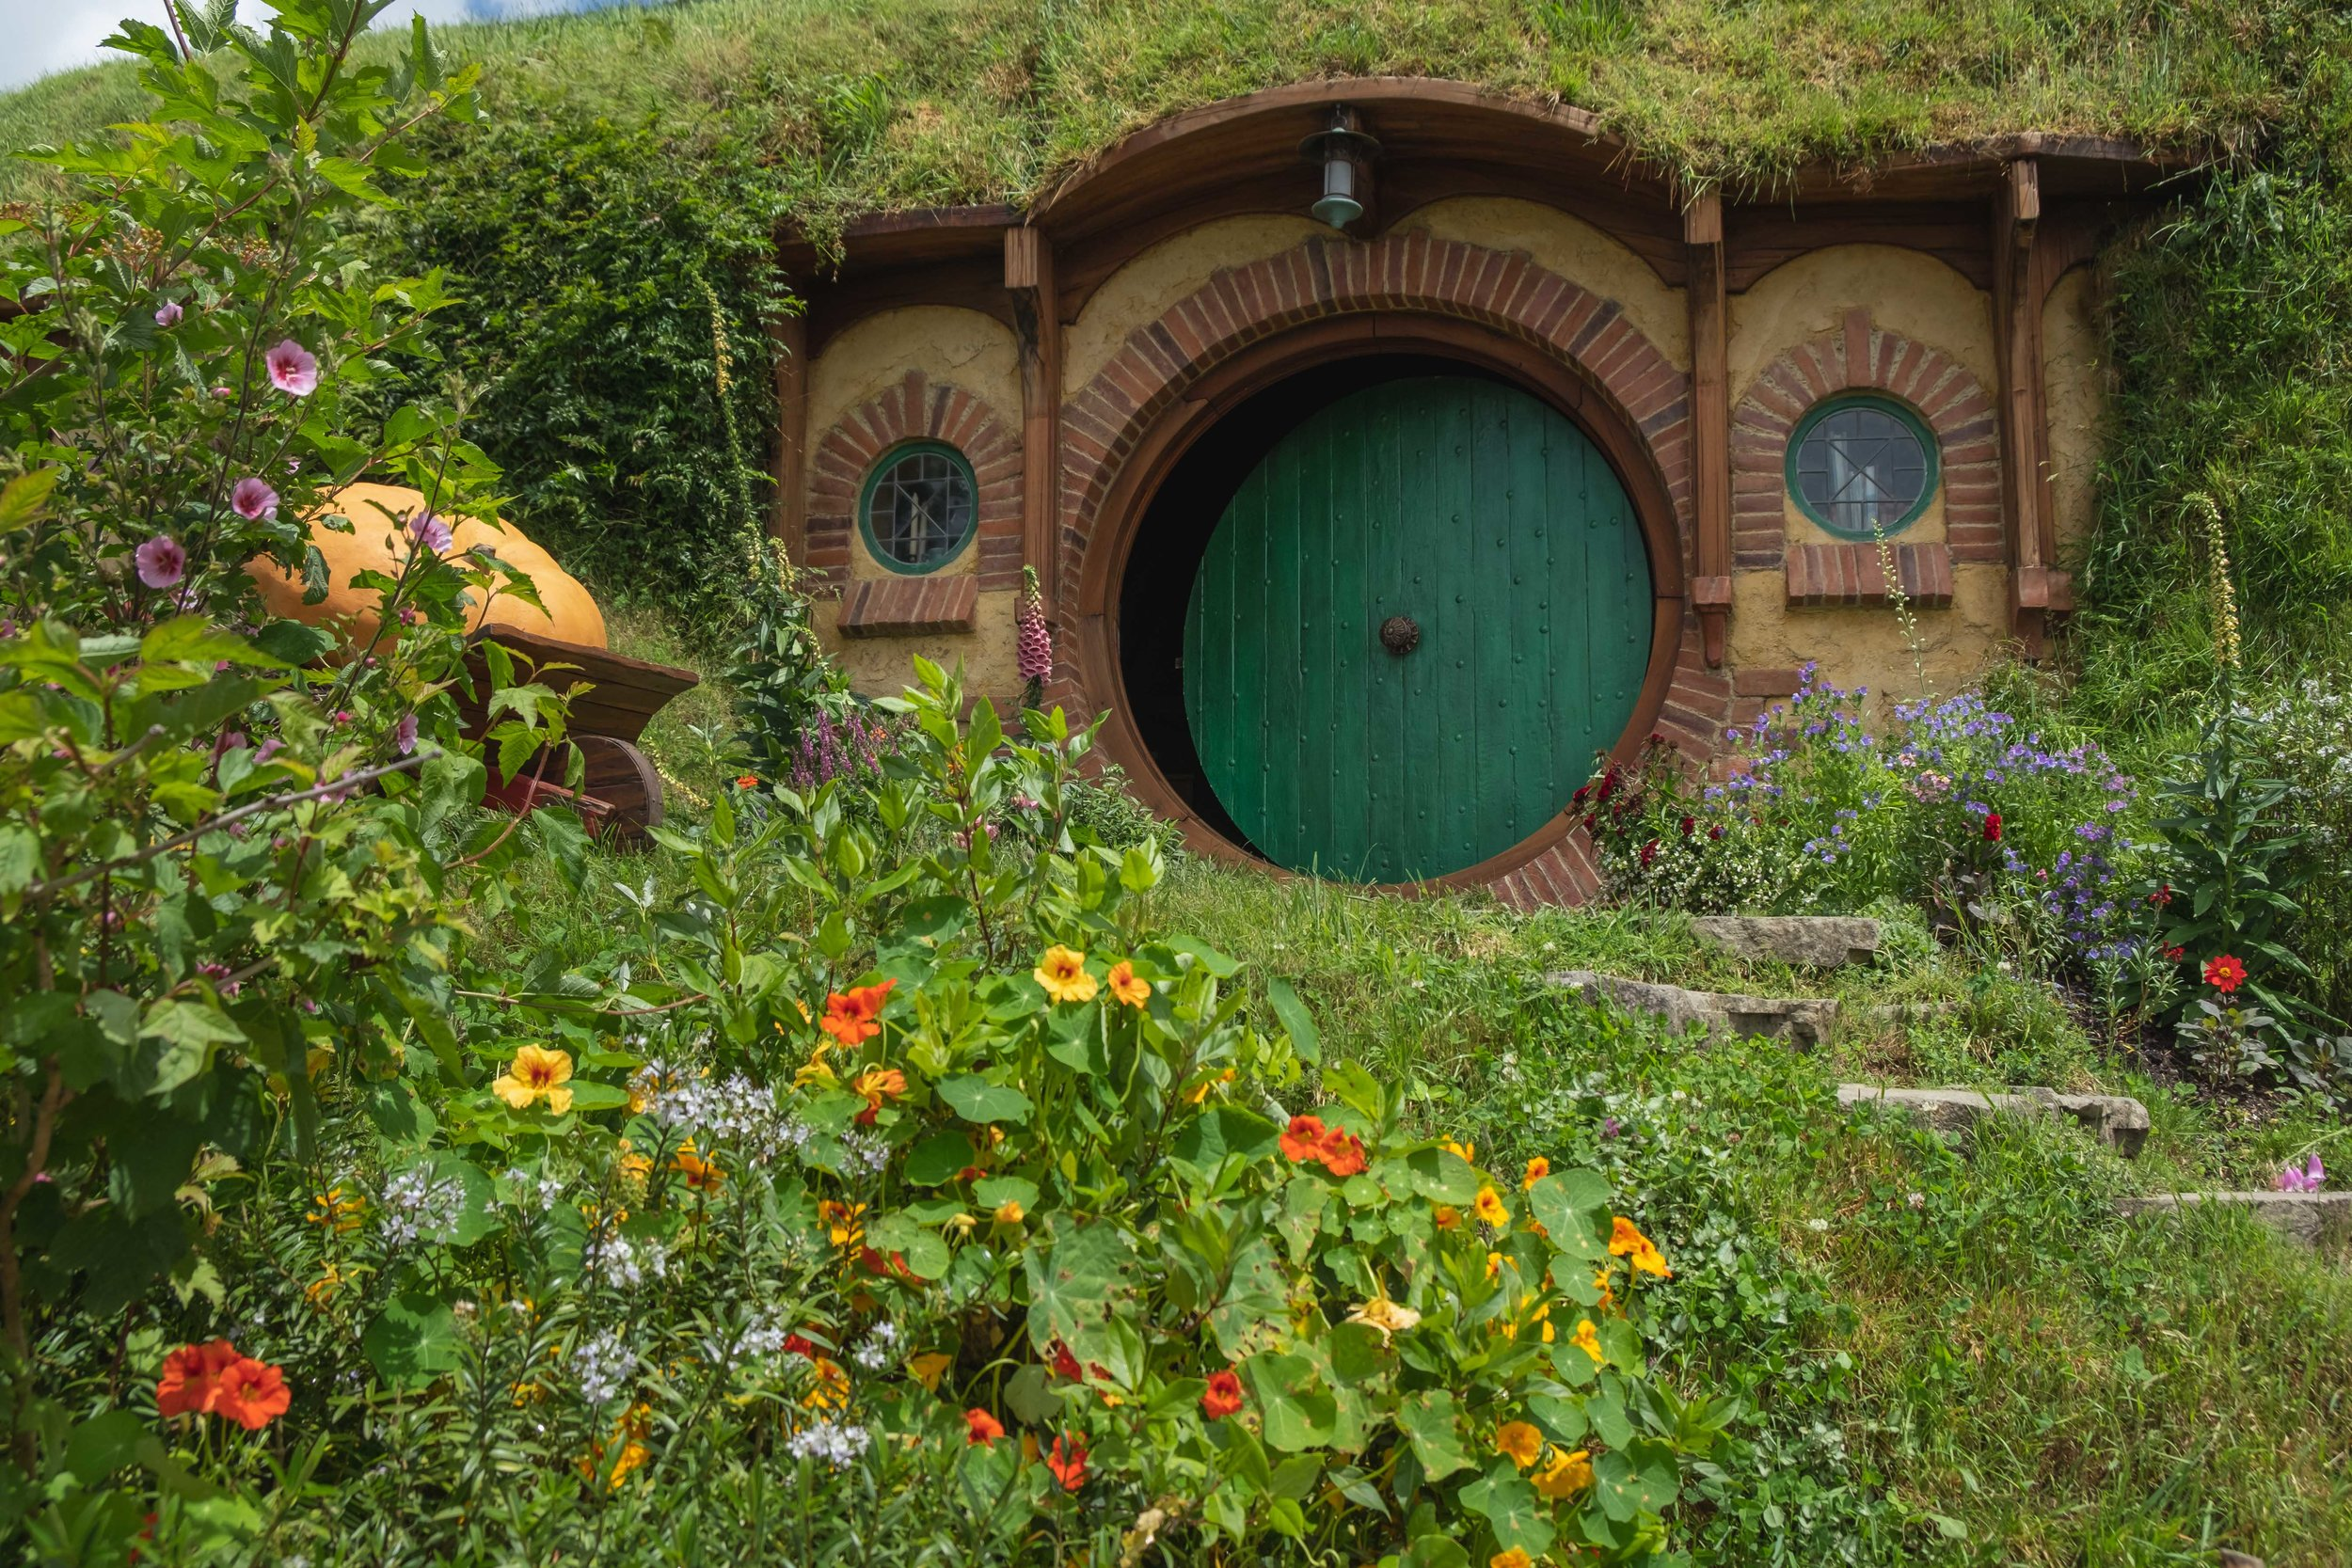 The most famous hole of them all. . .(Bag End, guys. . .Bilbo's house.)